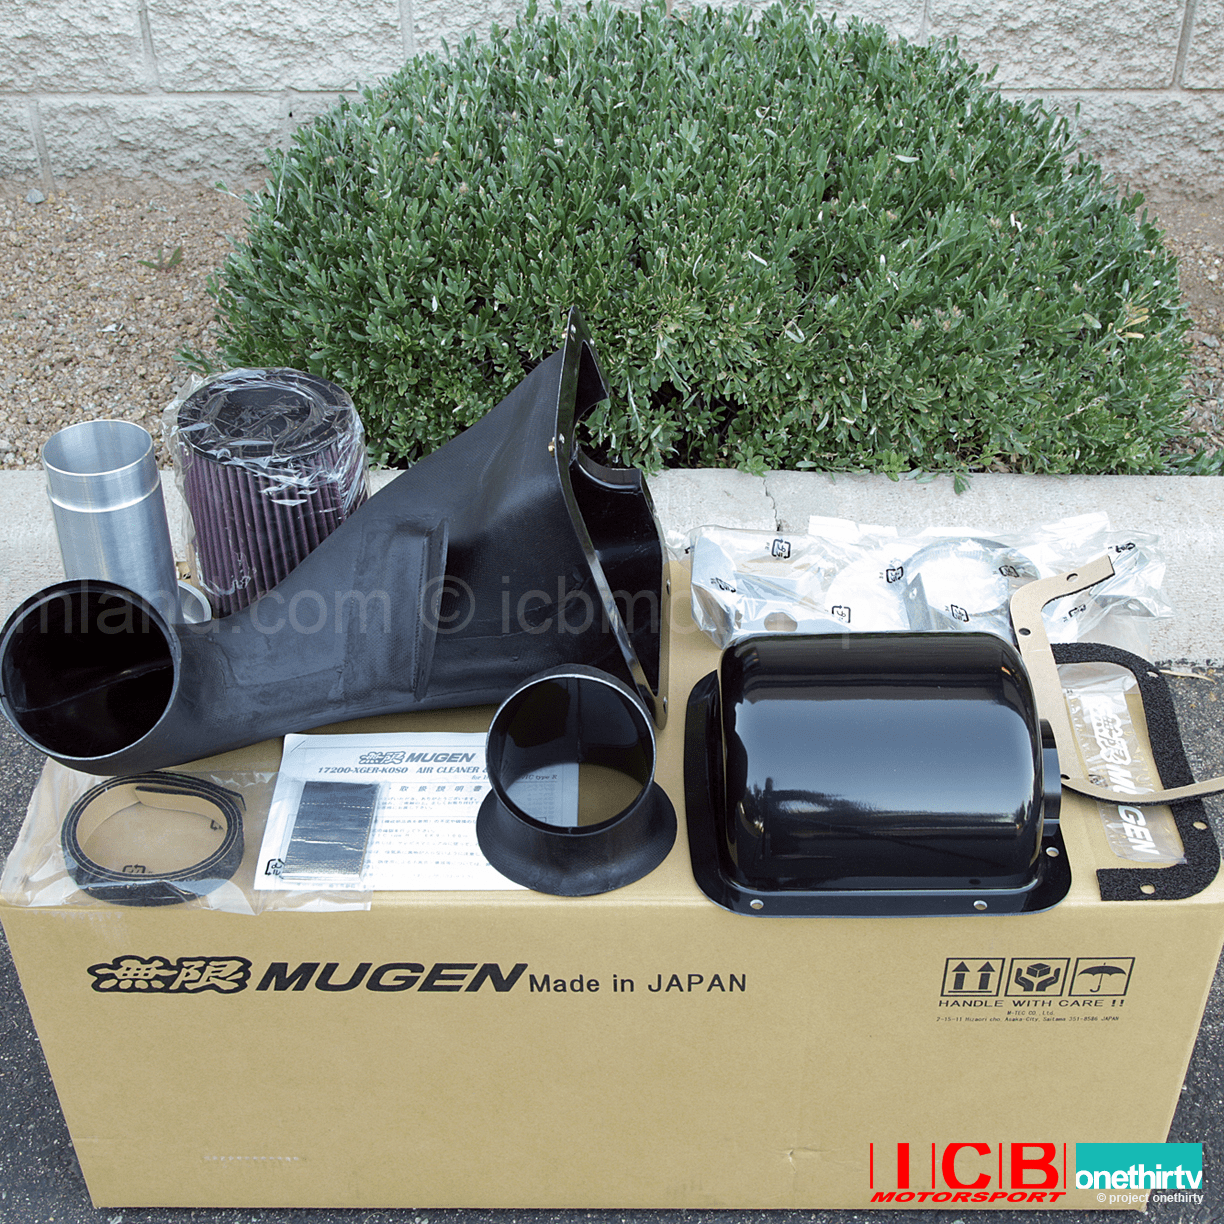 Mugen High Performance Air Intake System 17200-XGER-K0S0 96-00 Civic Type R / Si